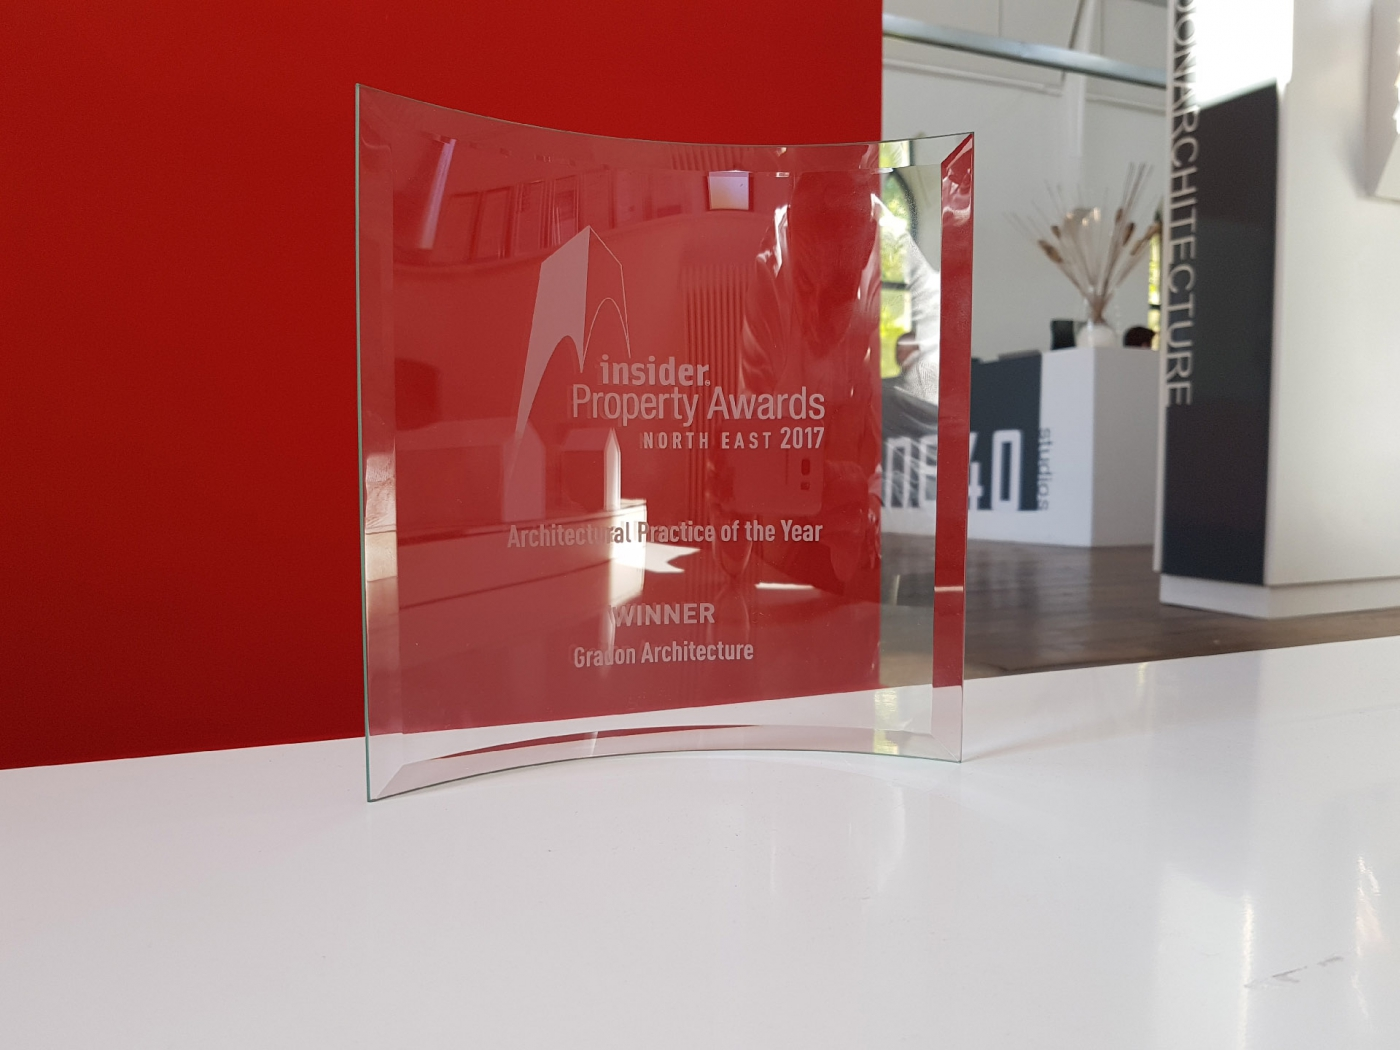 NE Architectural Practice of the Year